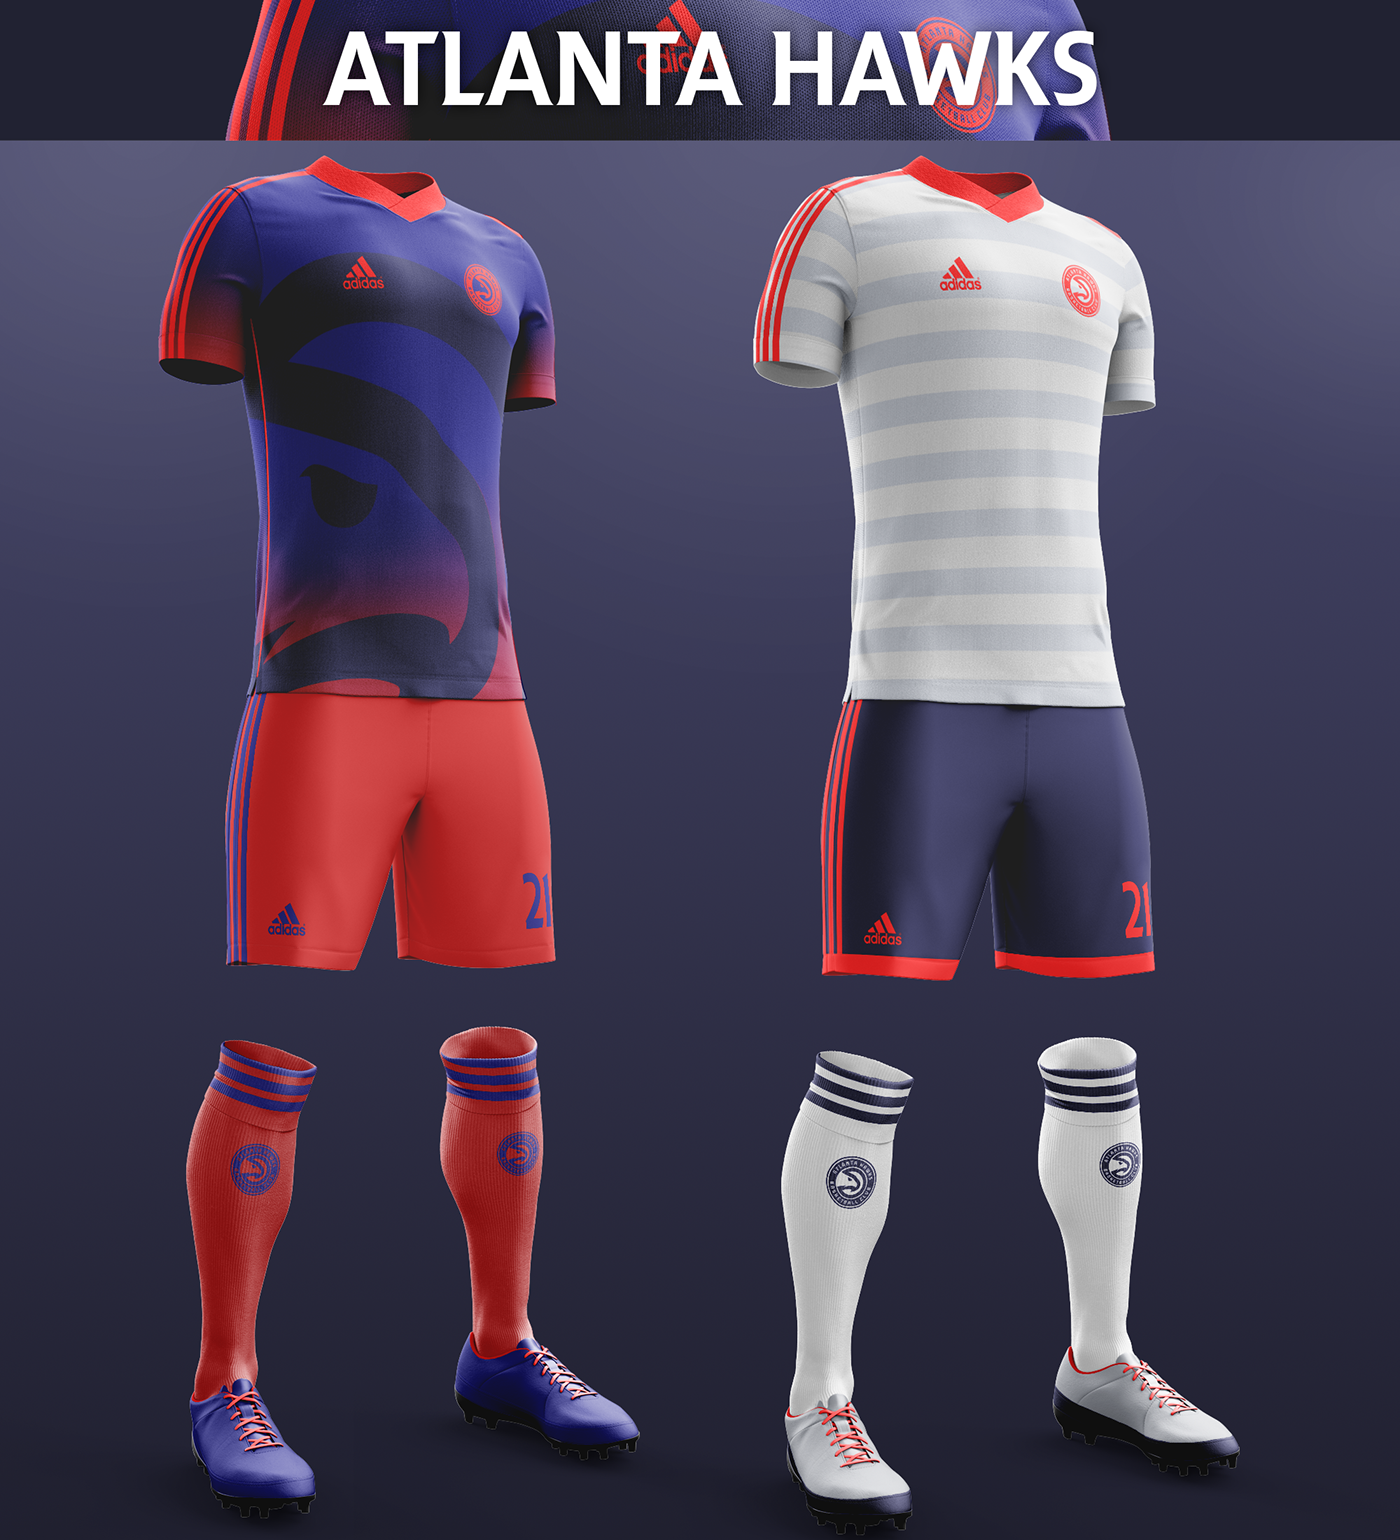 Talisman & Co. | Atlanta Hawks Soccer Concept Kit